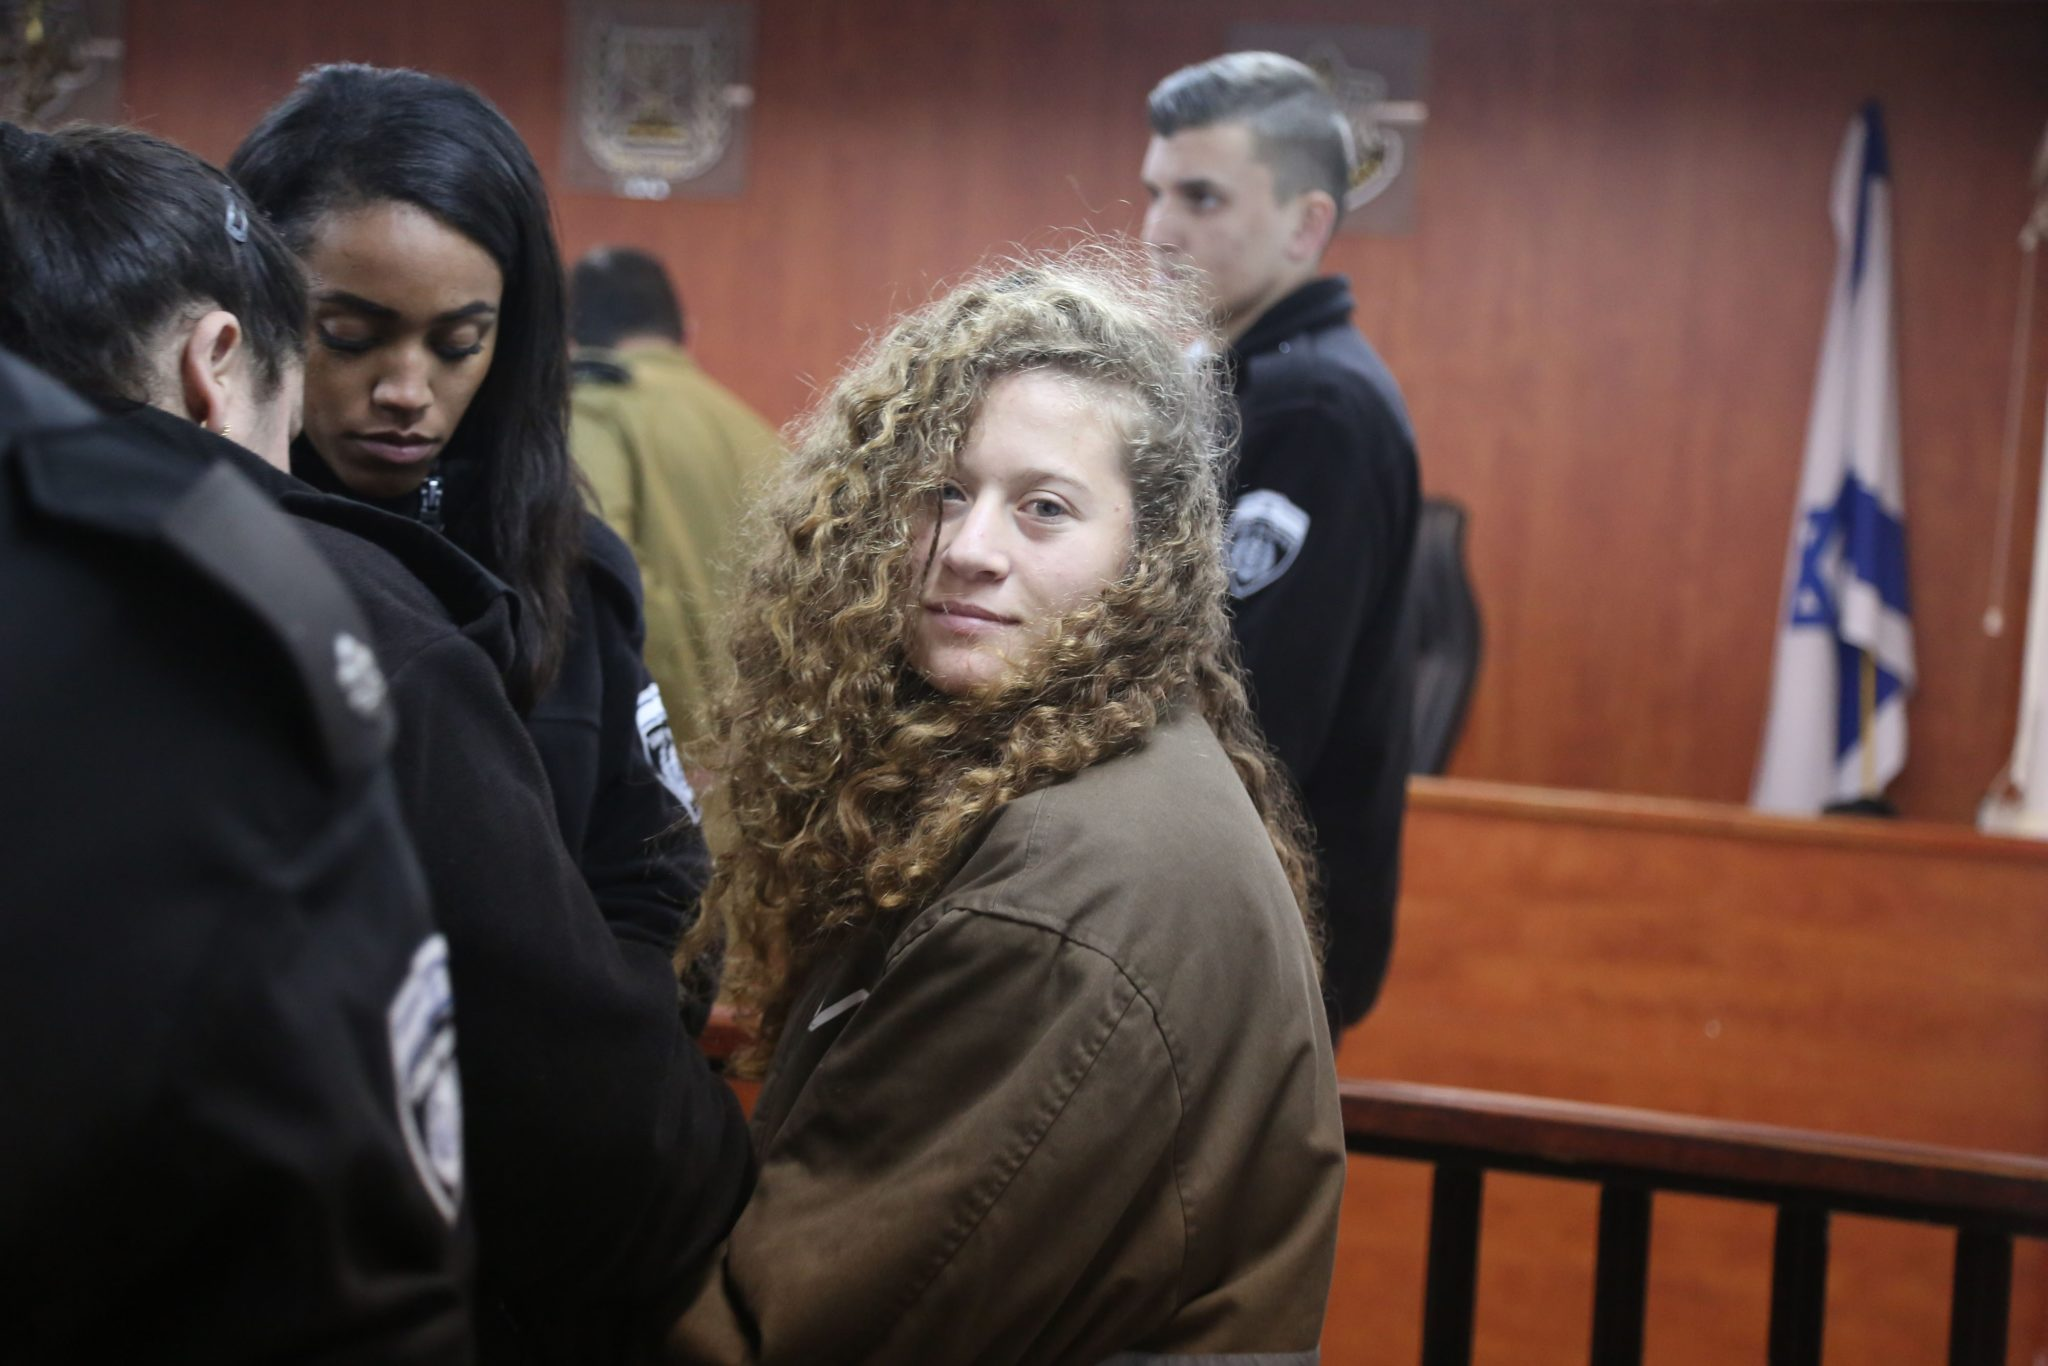 Israel/OPT: Palestinian child activist Ahed Tamimi sentenced to 8 months in prison